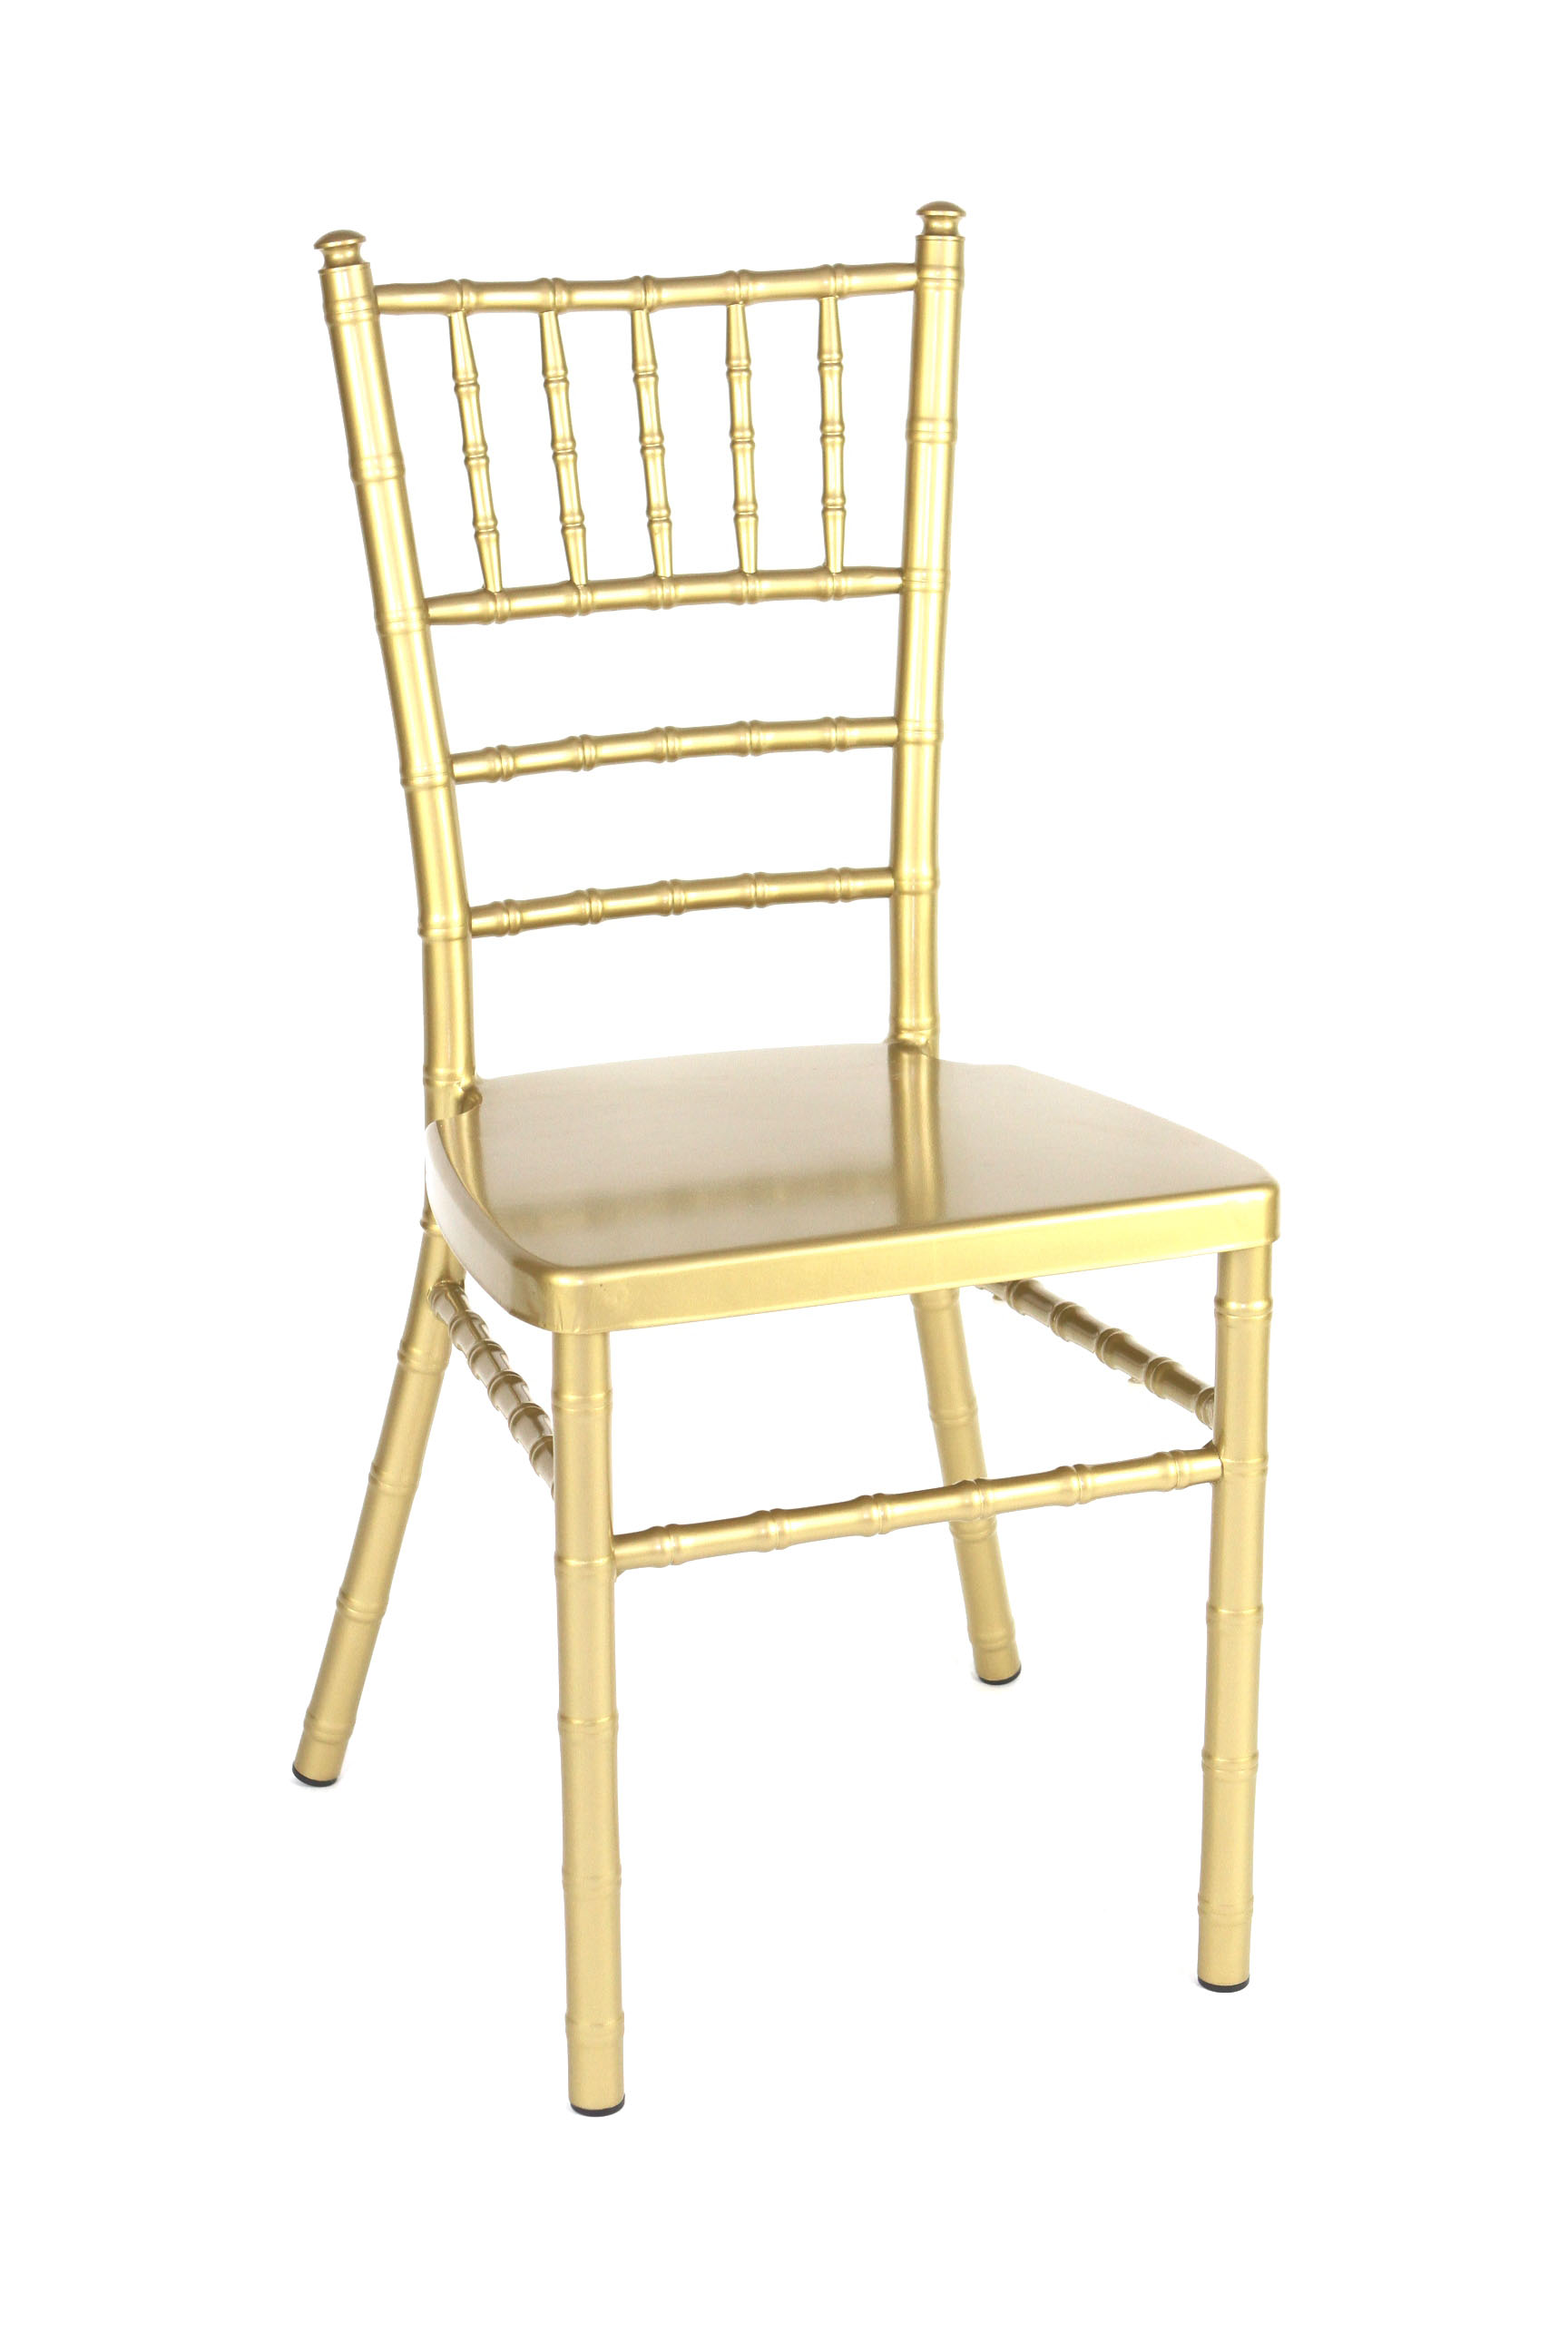 event chairs products chiavari limewash available following natural chair colours in chivari view setting the for hire